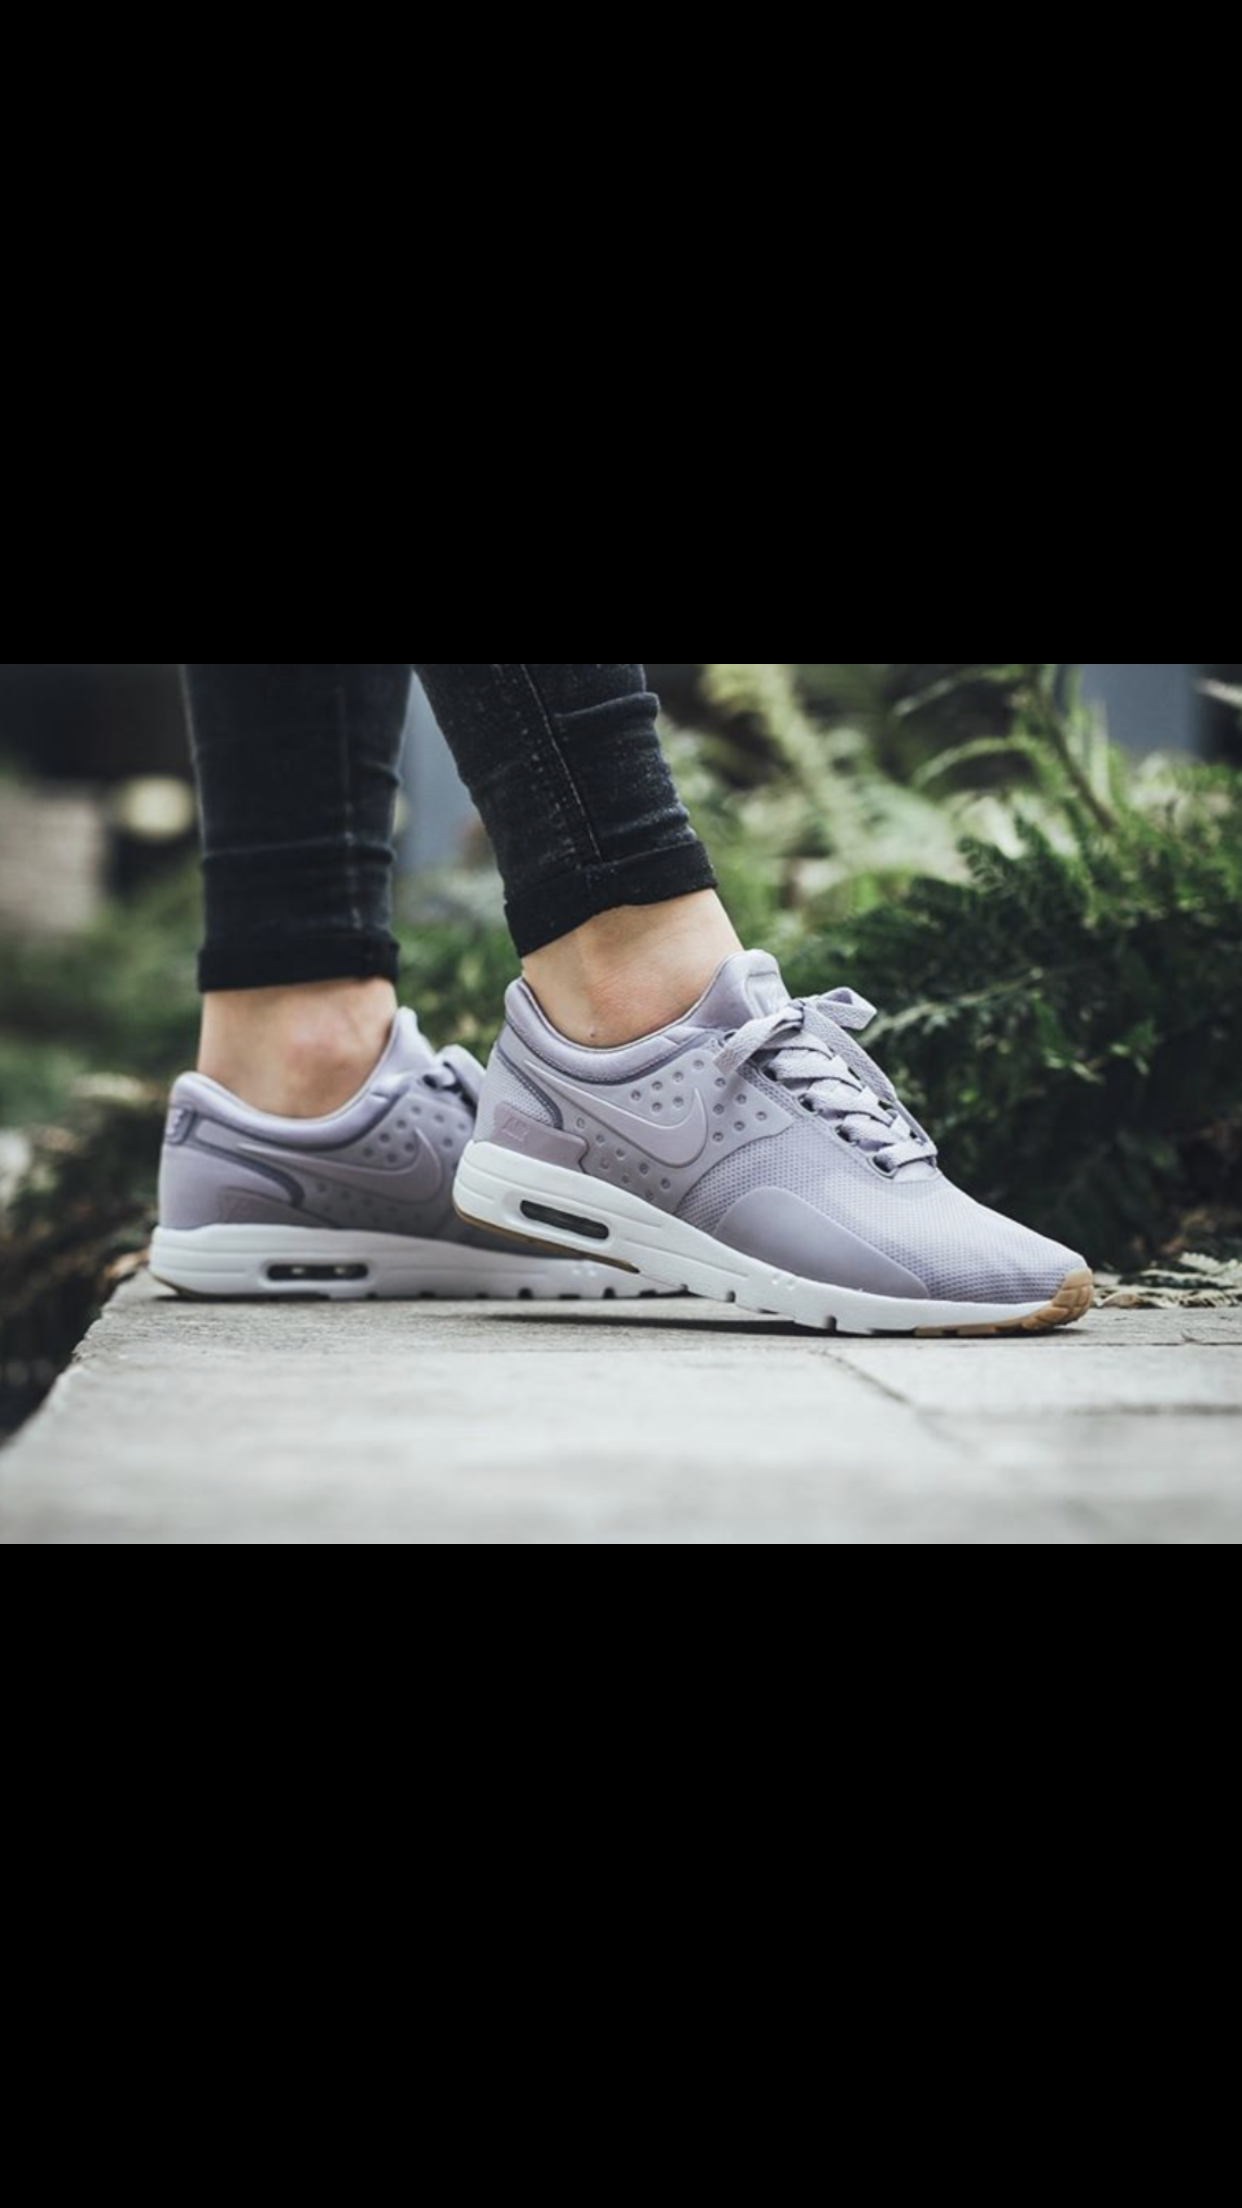 reputable site 5ec3b 6eb5f NIKE WOMENS AIR MAX ZERO SHOES PROVENCE PURPLE PROVENCE PURPLE - Nike Air  Max 1 Ultra